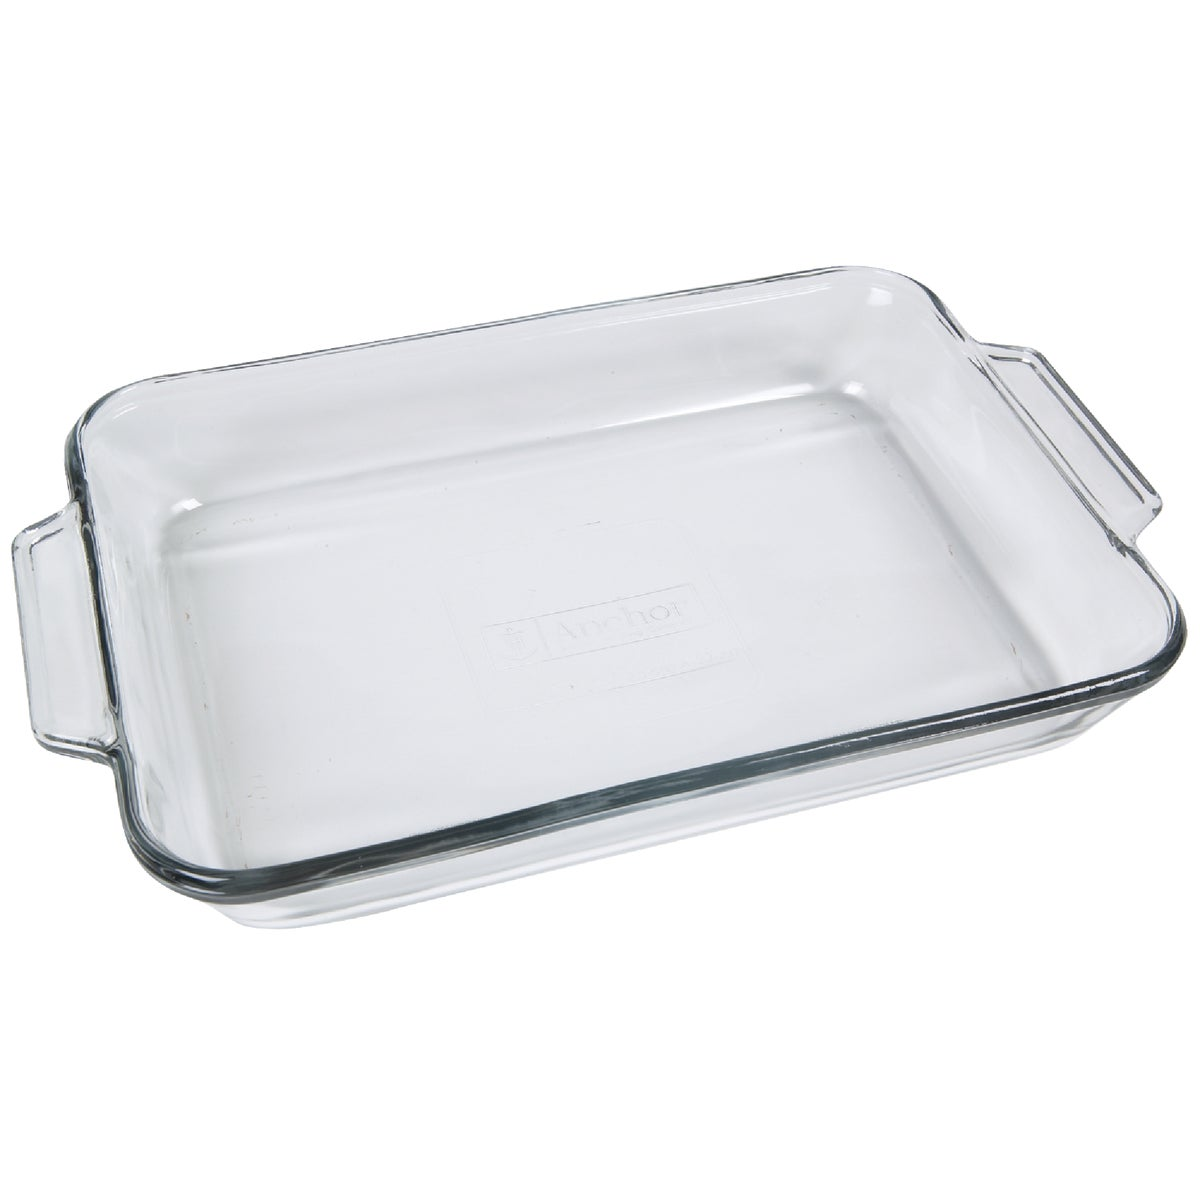 3QT GLASS BAKING DISH - 81935OBL11 by Anchor Hckg Roberts